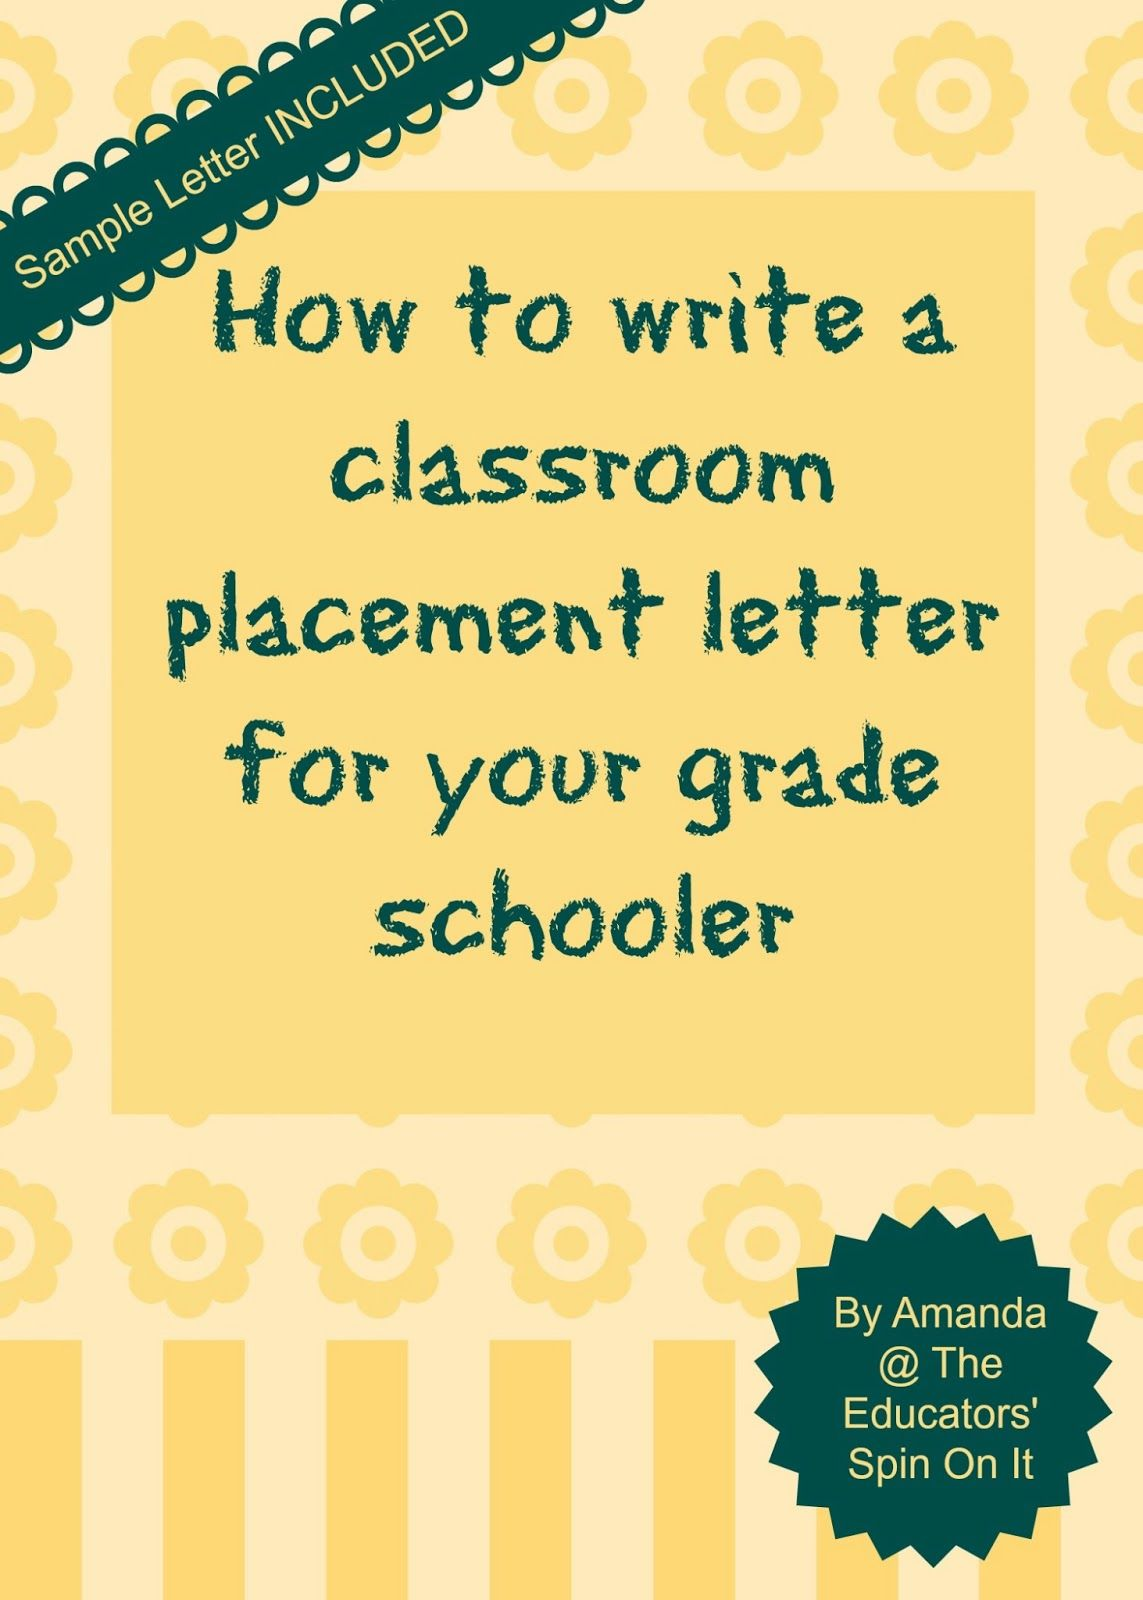 Writing a classroom placement letter or teacher request teacher the educators spin on it how to write a letter for classroom placement or aljukfo Gallery